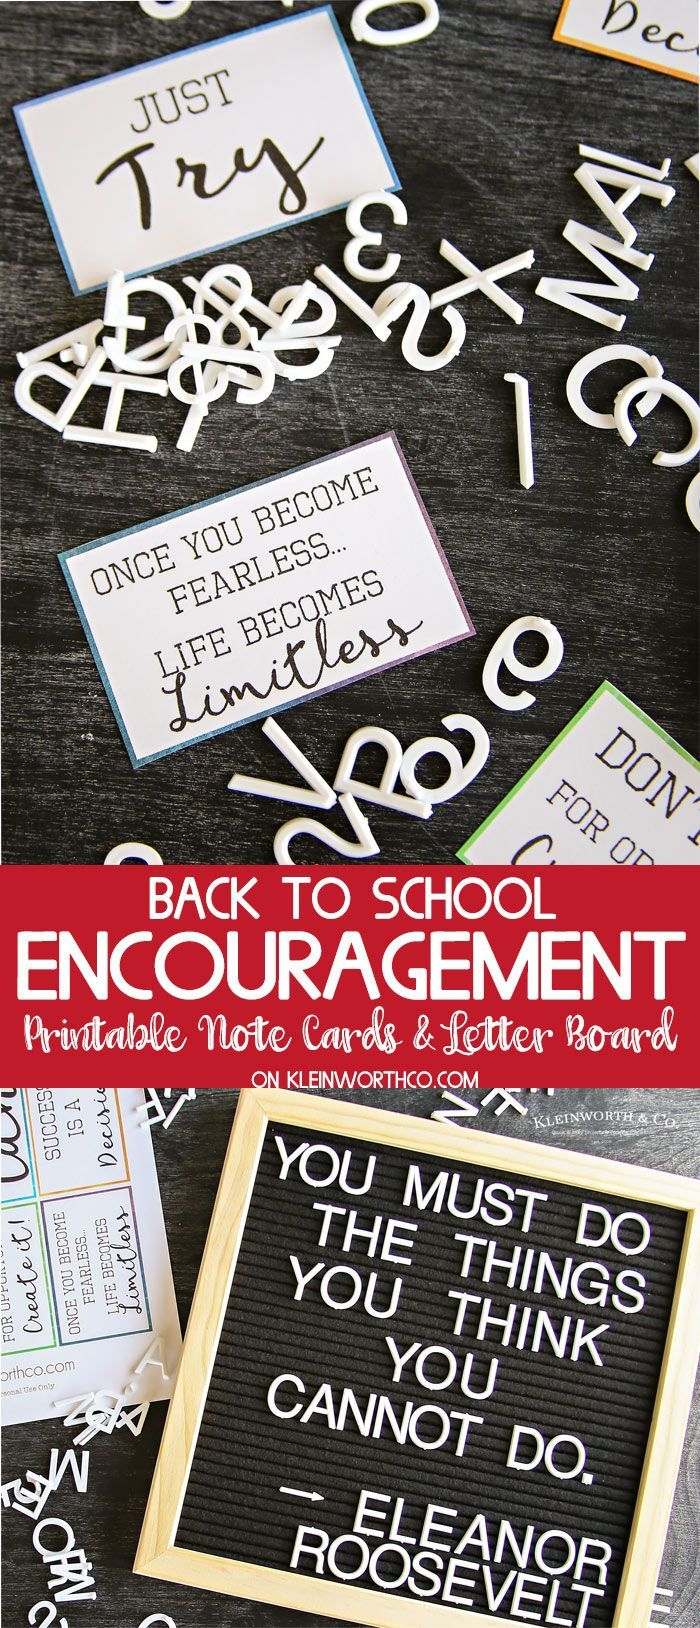 Print this Encouragement Back to School Lunch Notes to go with this awesome letter board & keep the positive mindset flowing all day long. FUN for kids via @KleinworthCo